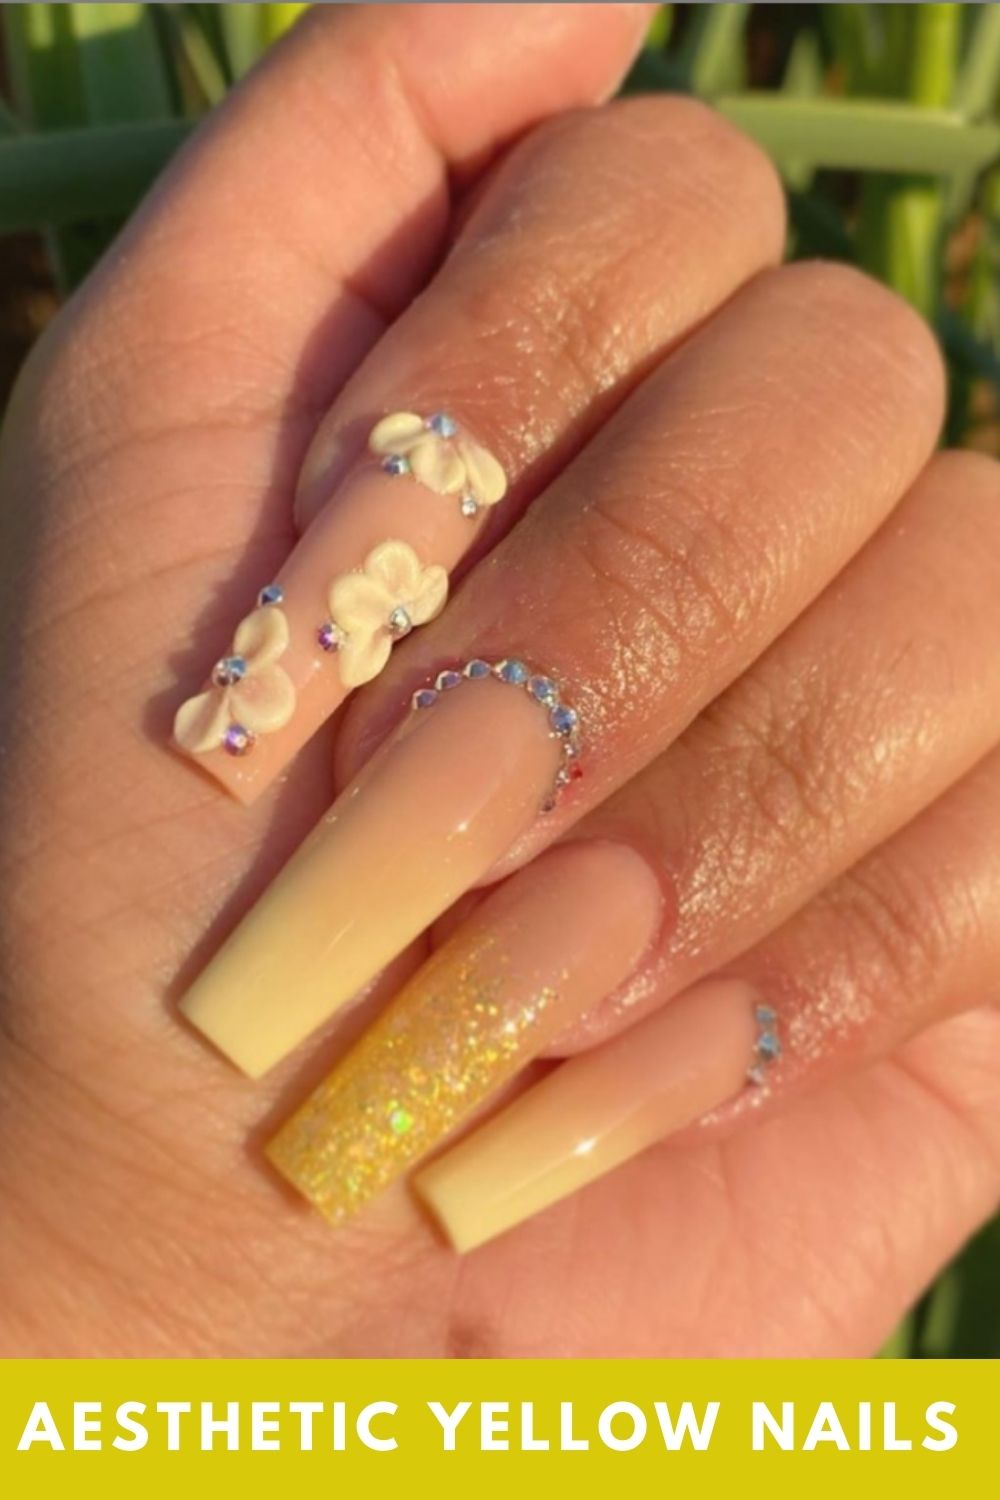 Sweet yellow coffin nails